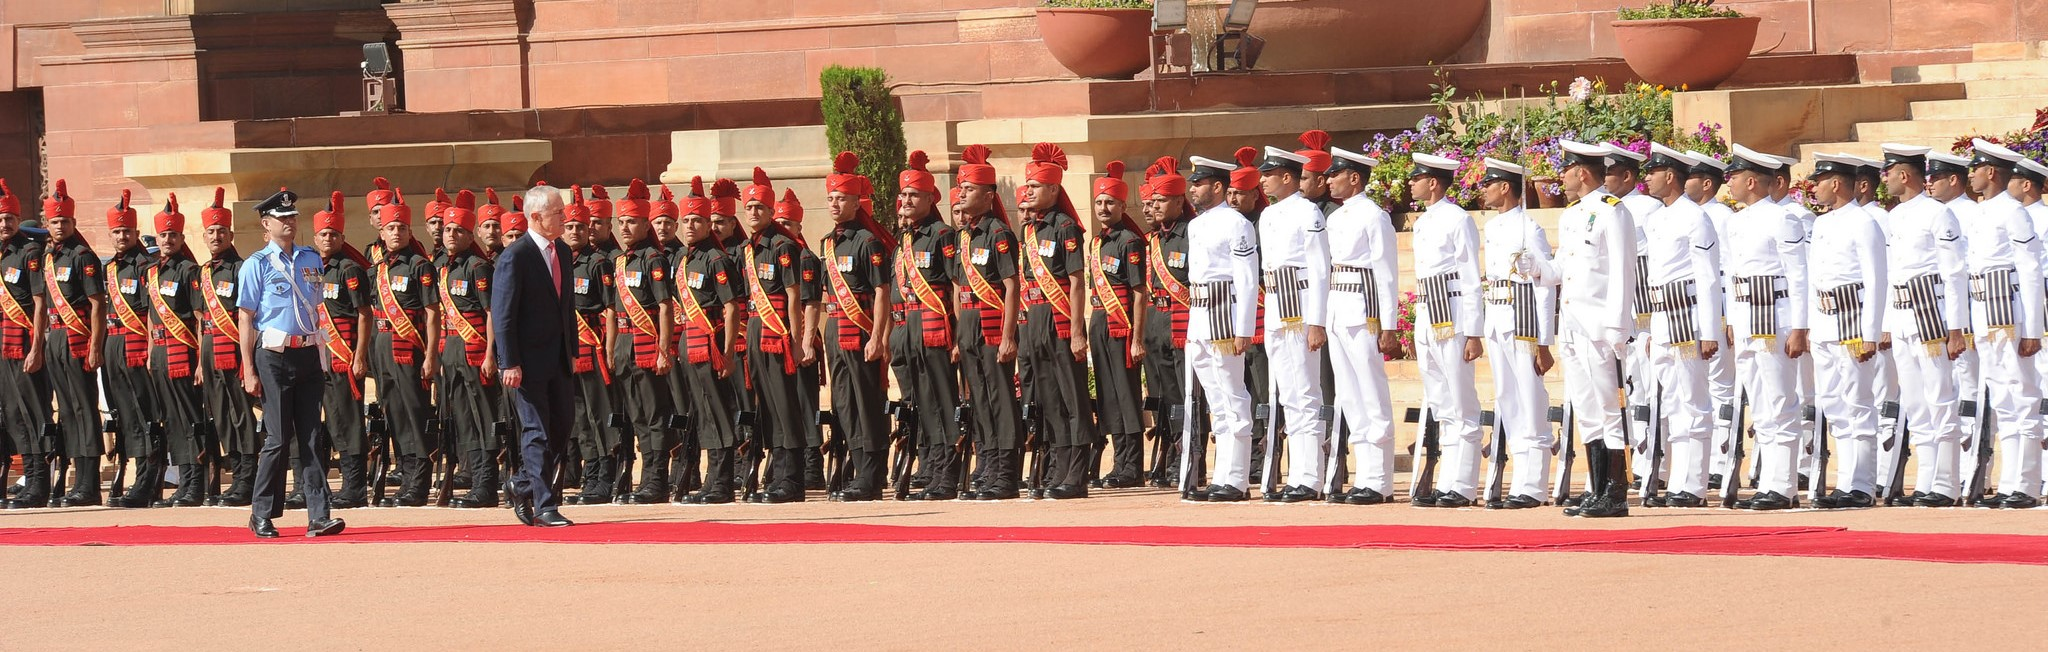 Australian PM Malcolm Turnbull inspects the Guard of Honour at a ceremonial reception in New Delhi last month (Photo: Indian government)